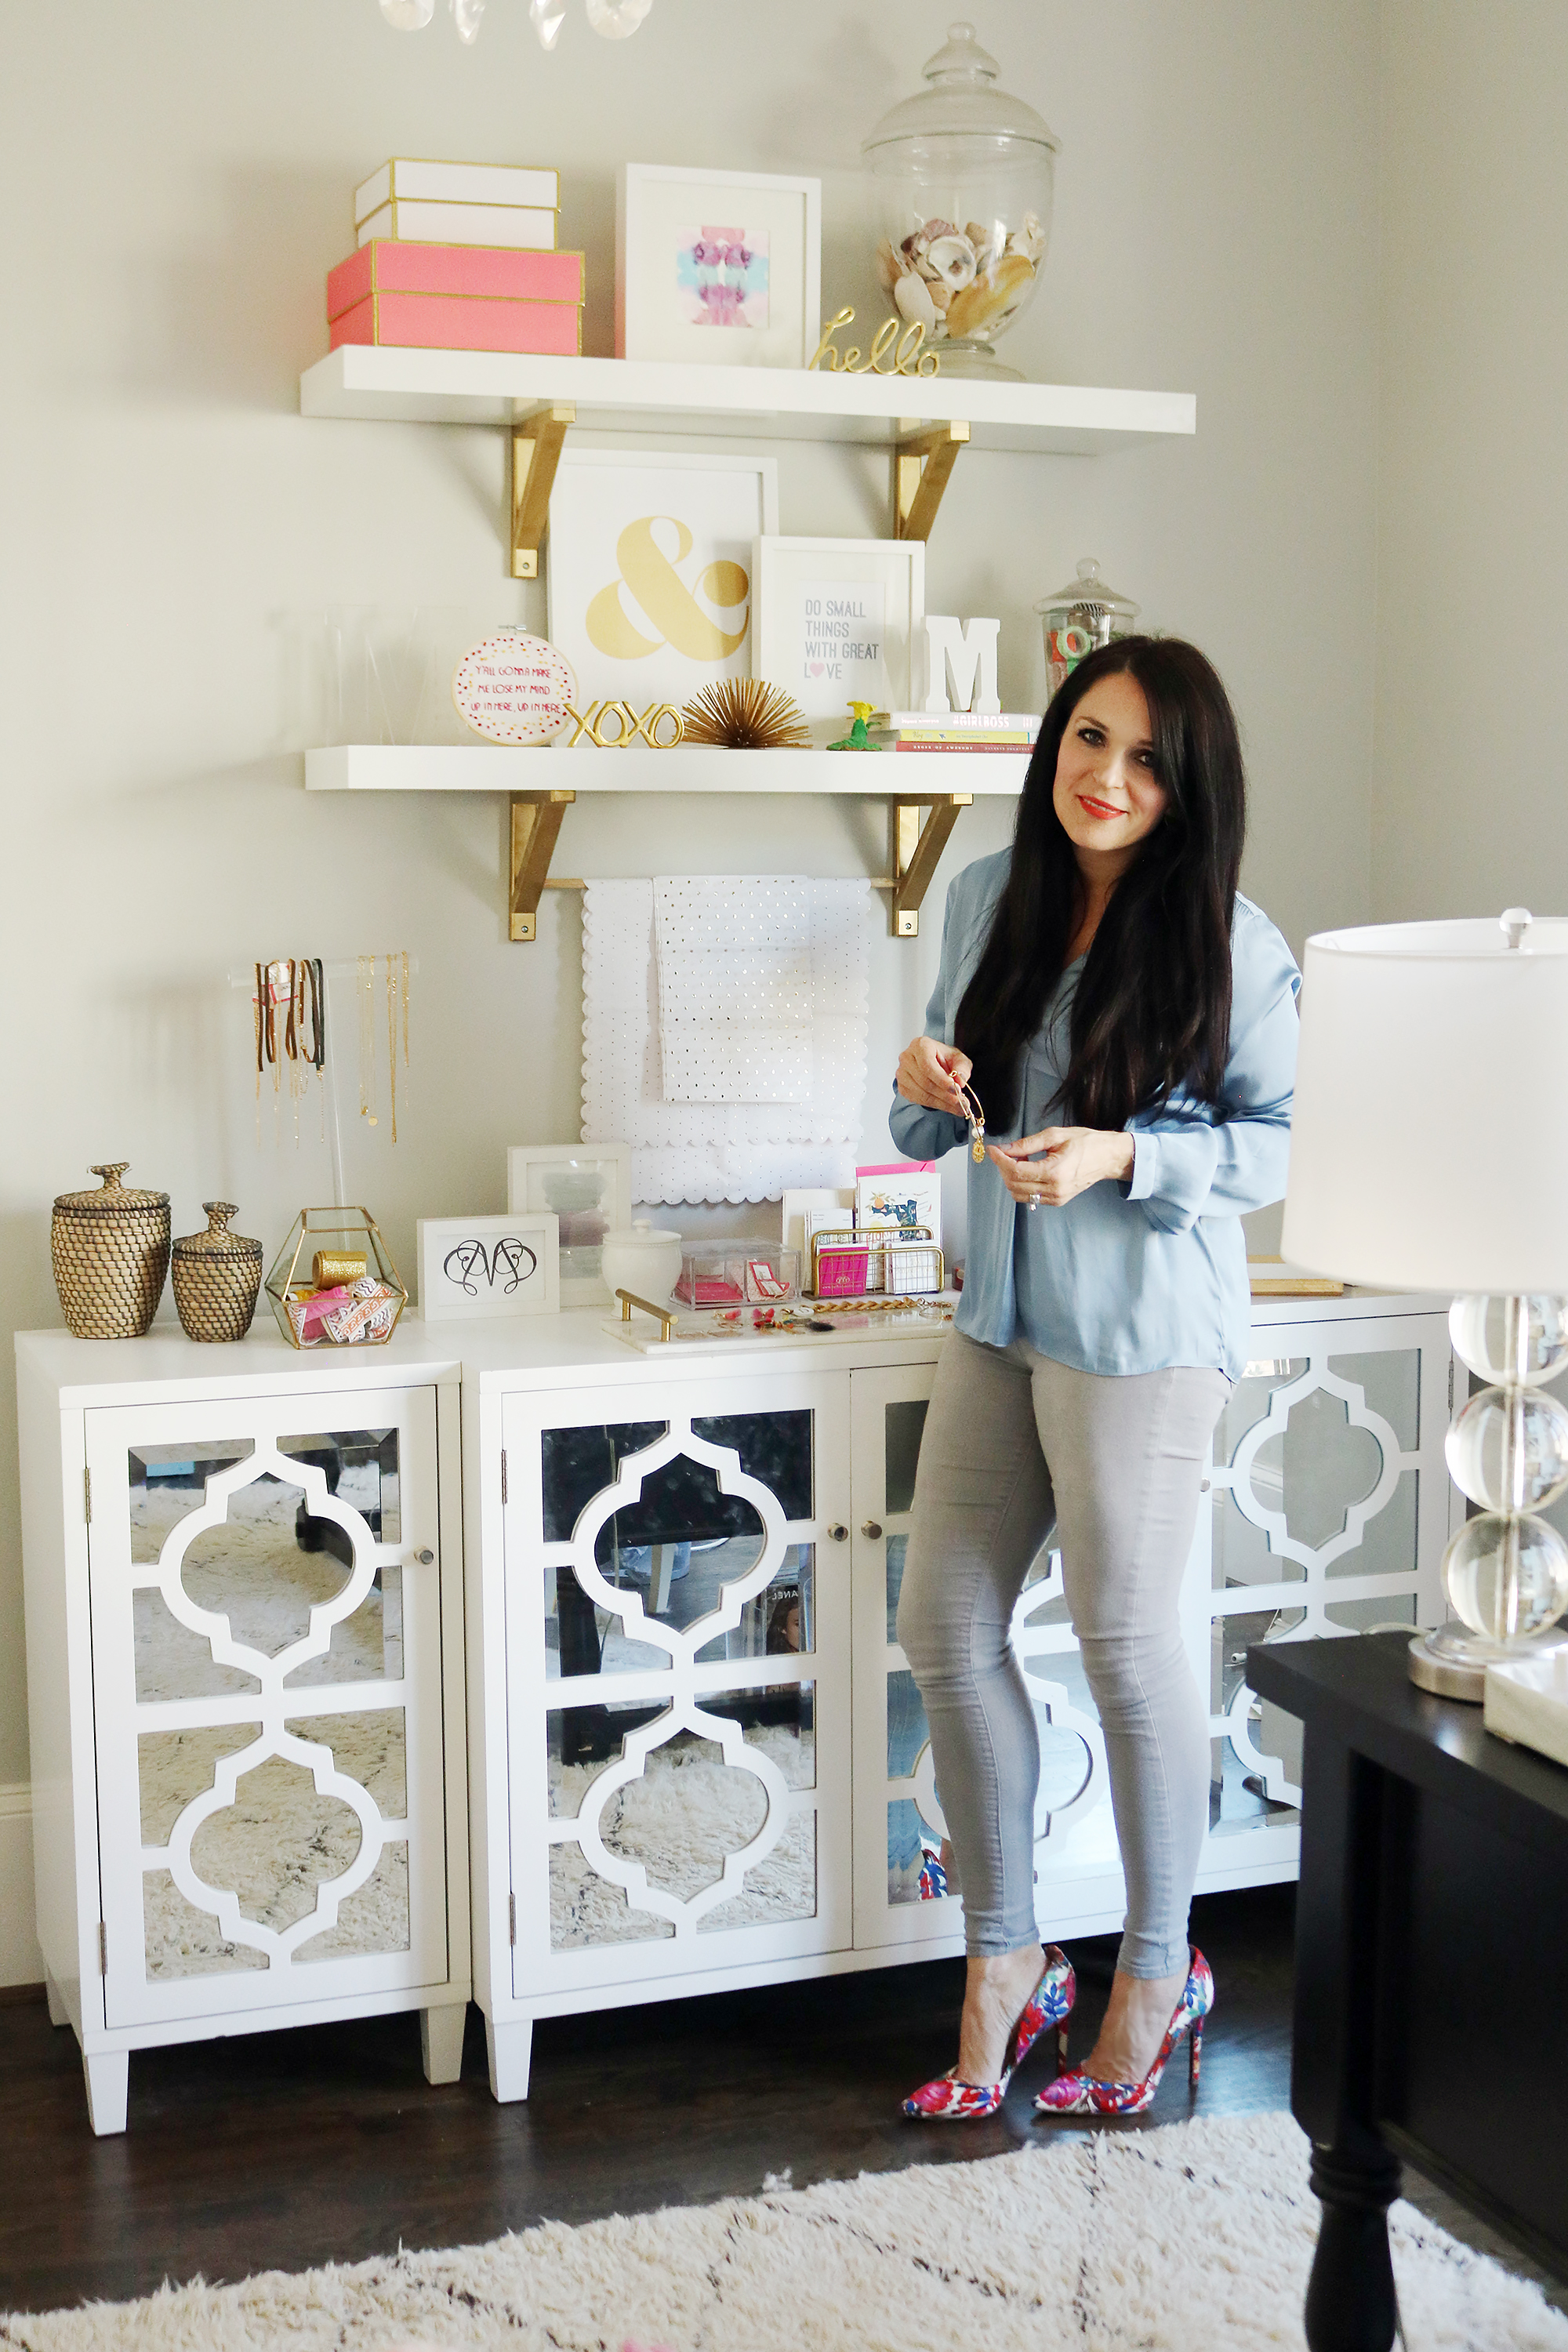 Darleen Meier Jewelry Office Tour | Feminine and Chic office studio | Darling Darleen #homeoffice #darleenmeierjewelry #darlingdarleen #officereveal